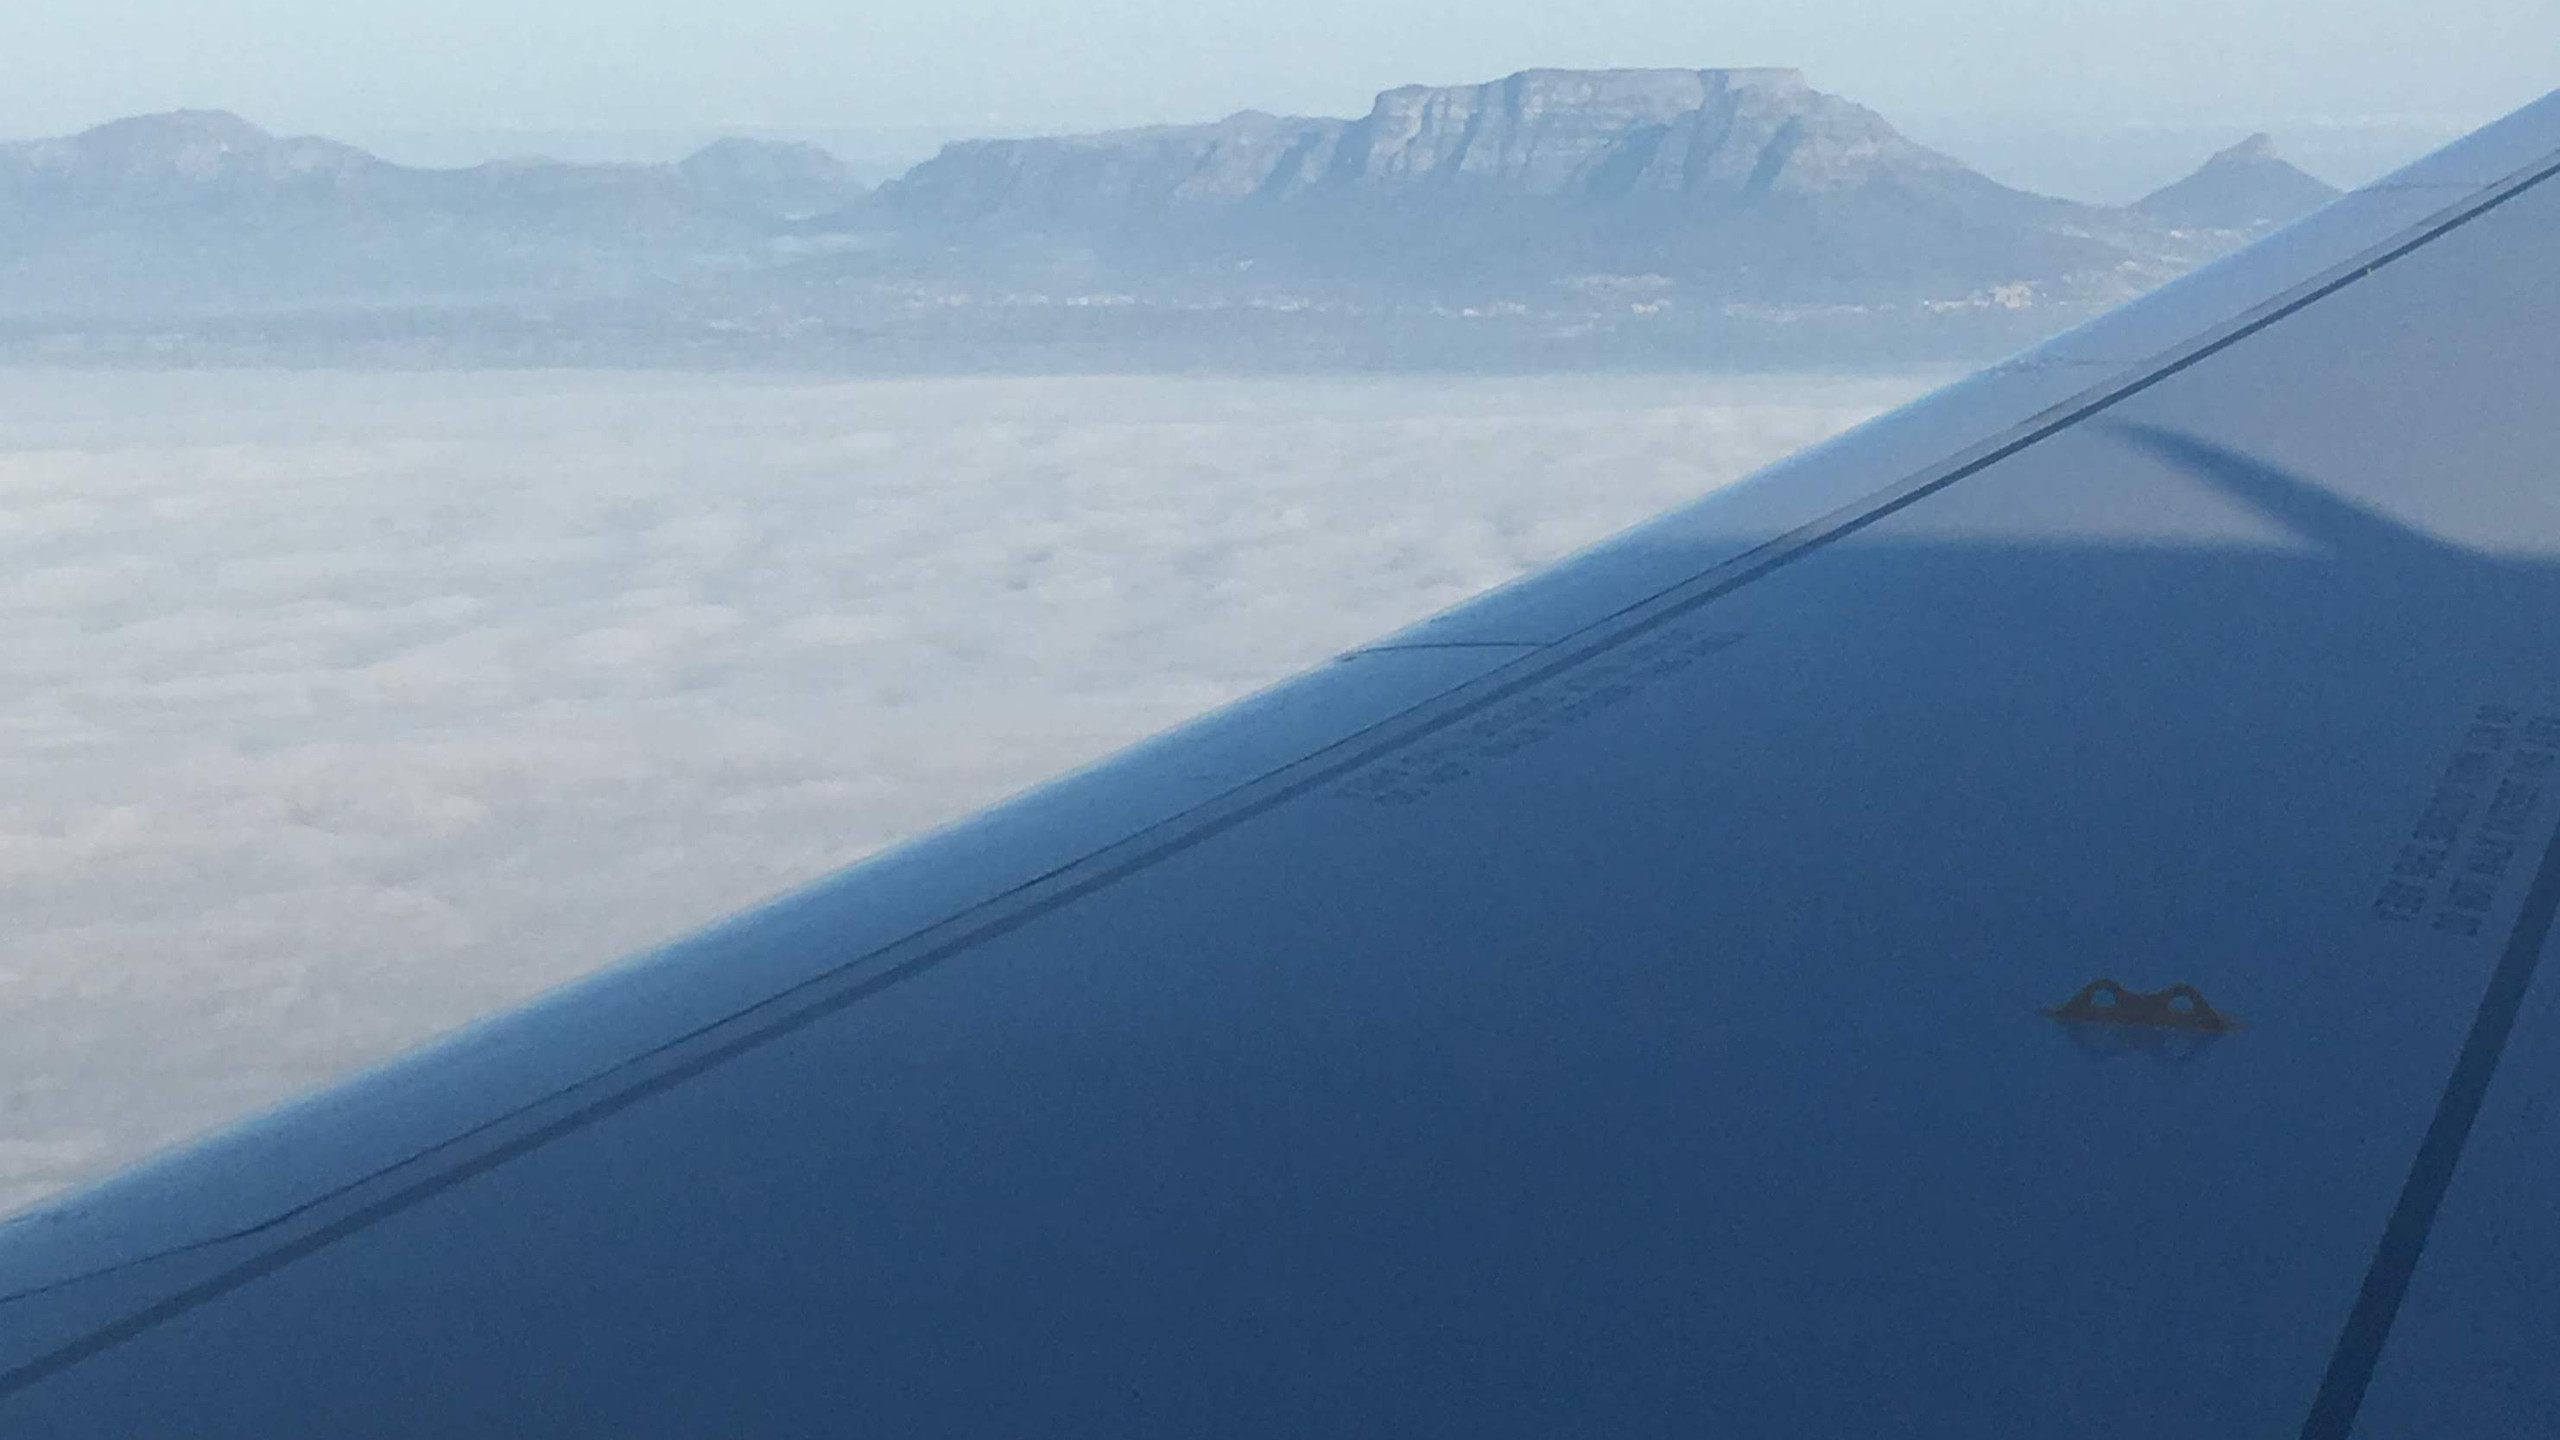 Our first glimpse at the iconic Table Mountain